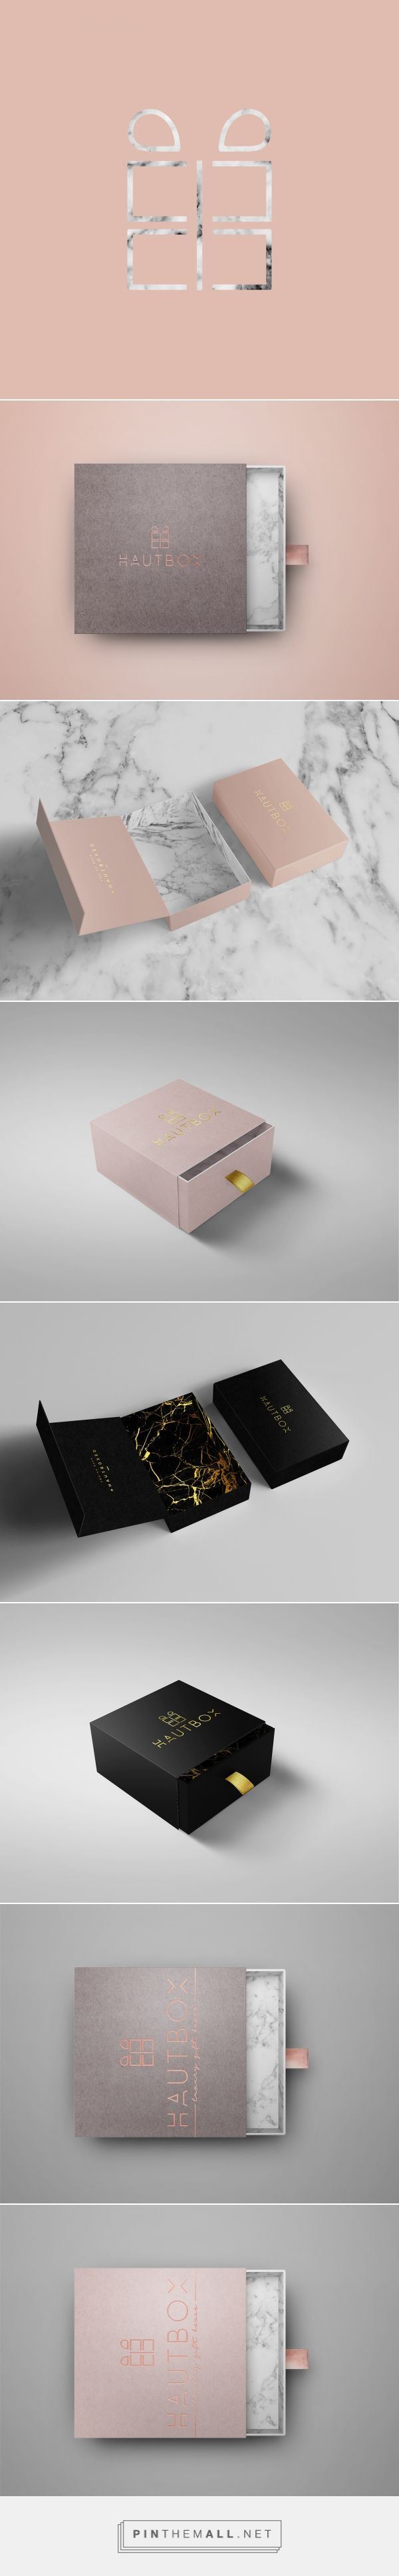 Hautbox by Yeal Saferstein, Miami, Florida on Behance curated by Packaging Diva PD. Hautbox is a luxury curated gift box that comes in 12 variations, making gifting for any occasion as simple as a click of a button.